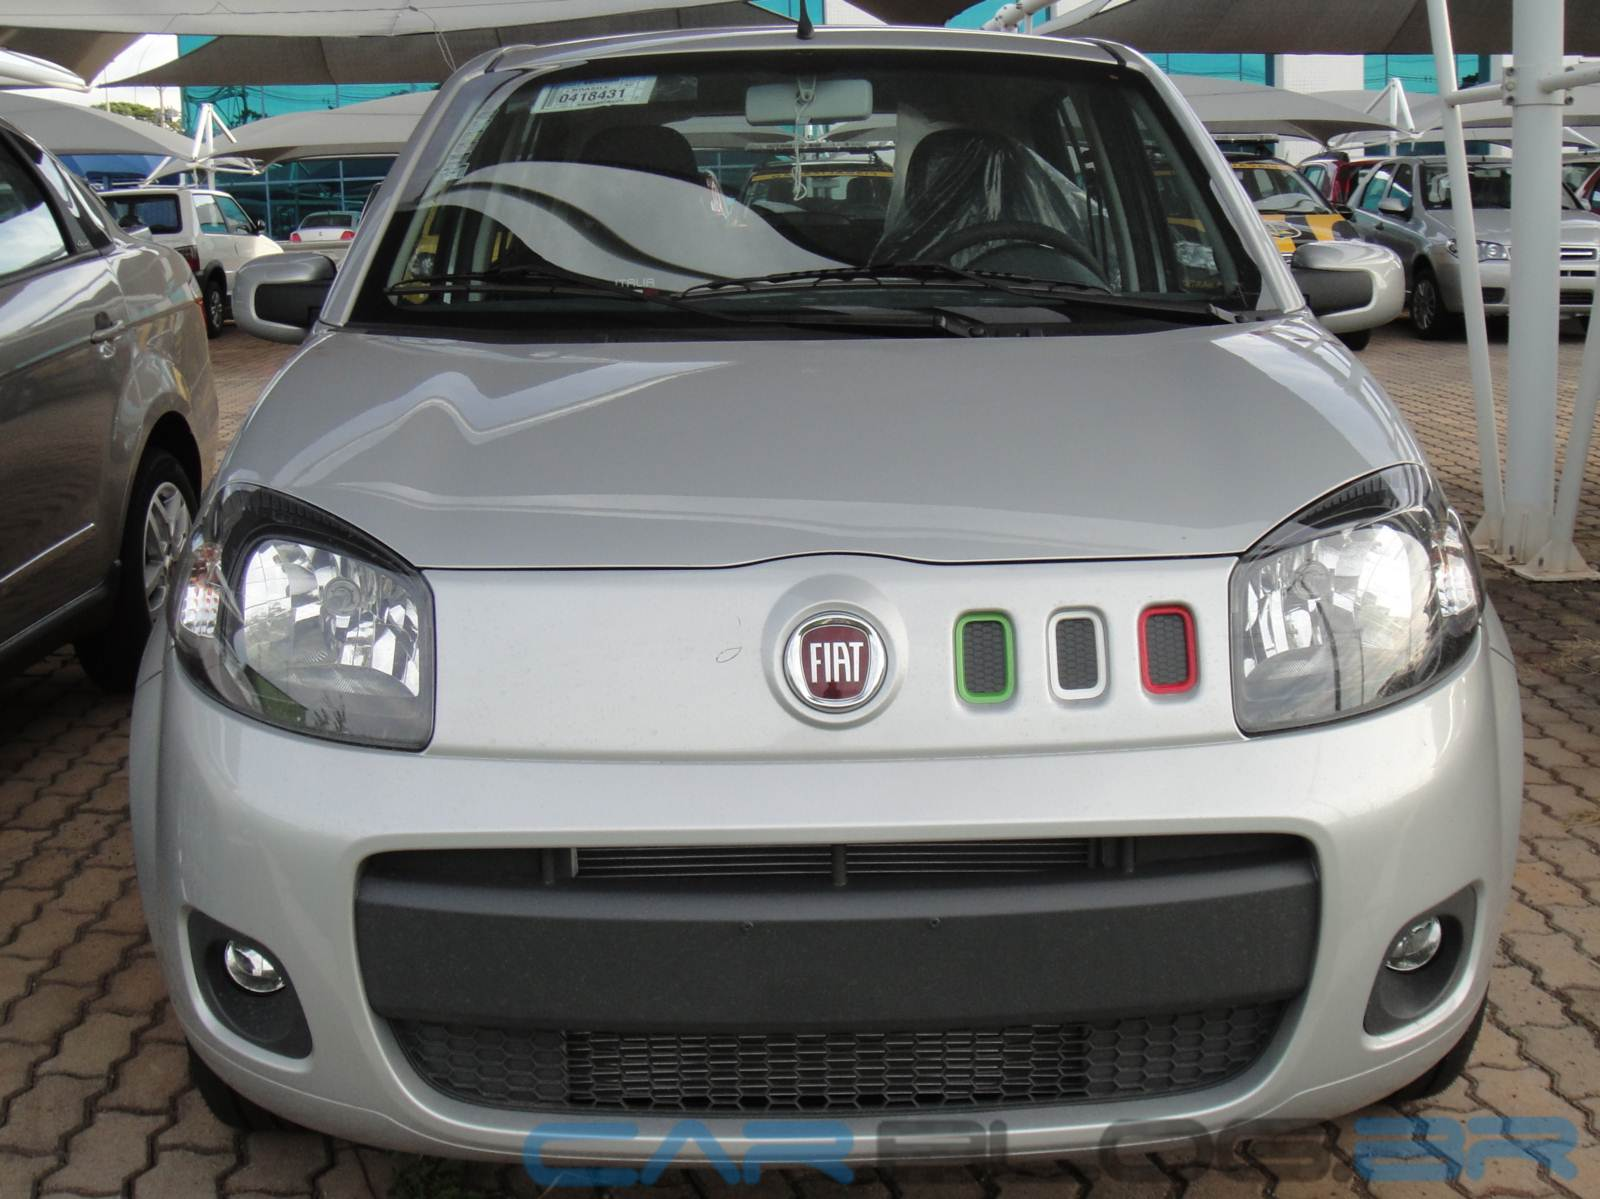 Fiat Uno 2015 x Volkswagen up! - vendas